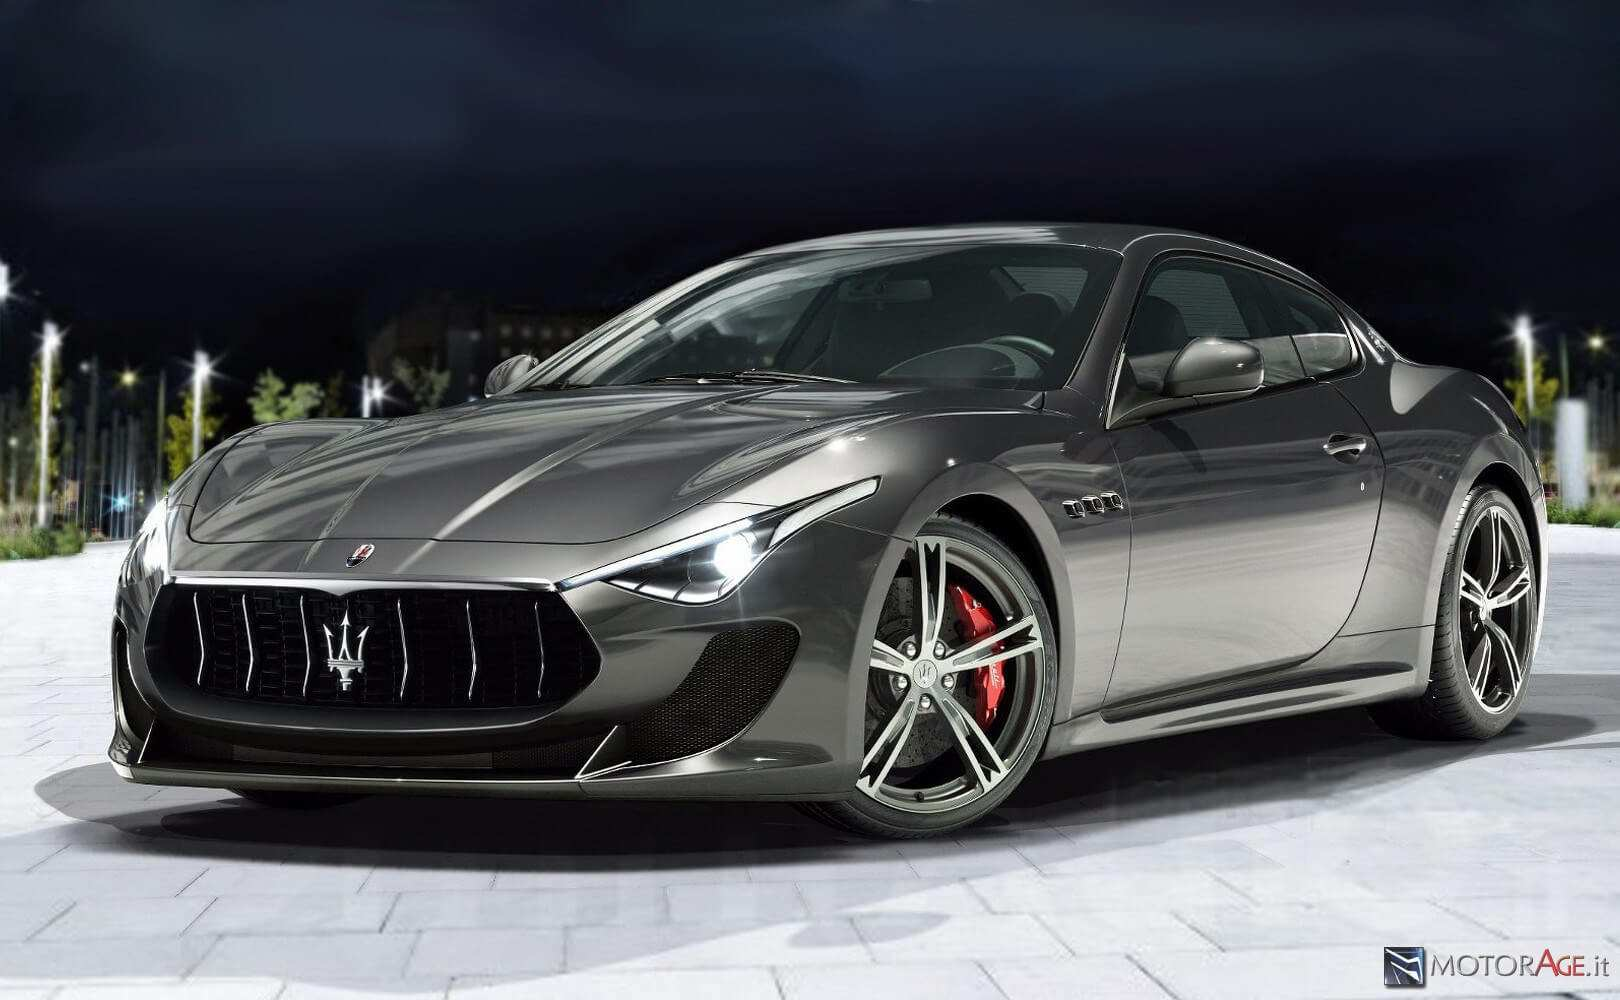 79 Concept of 2019 Maserati Gt Pictures with 2019 Maserati Gt